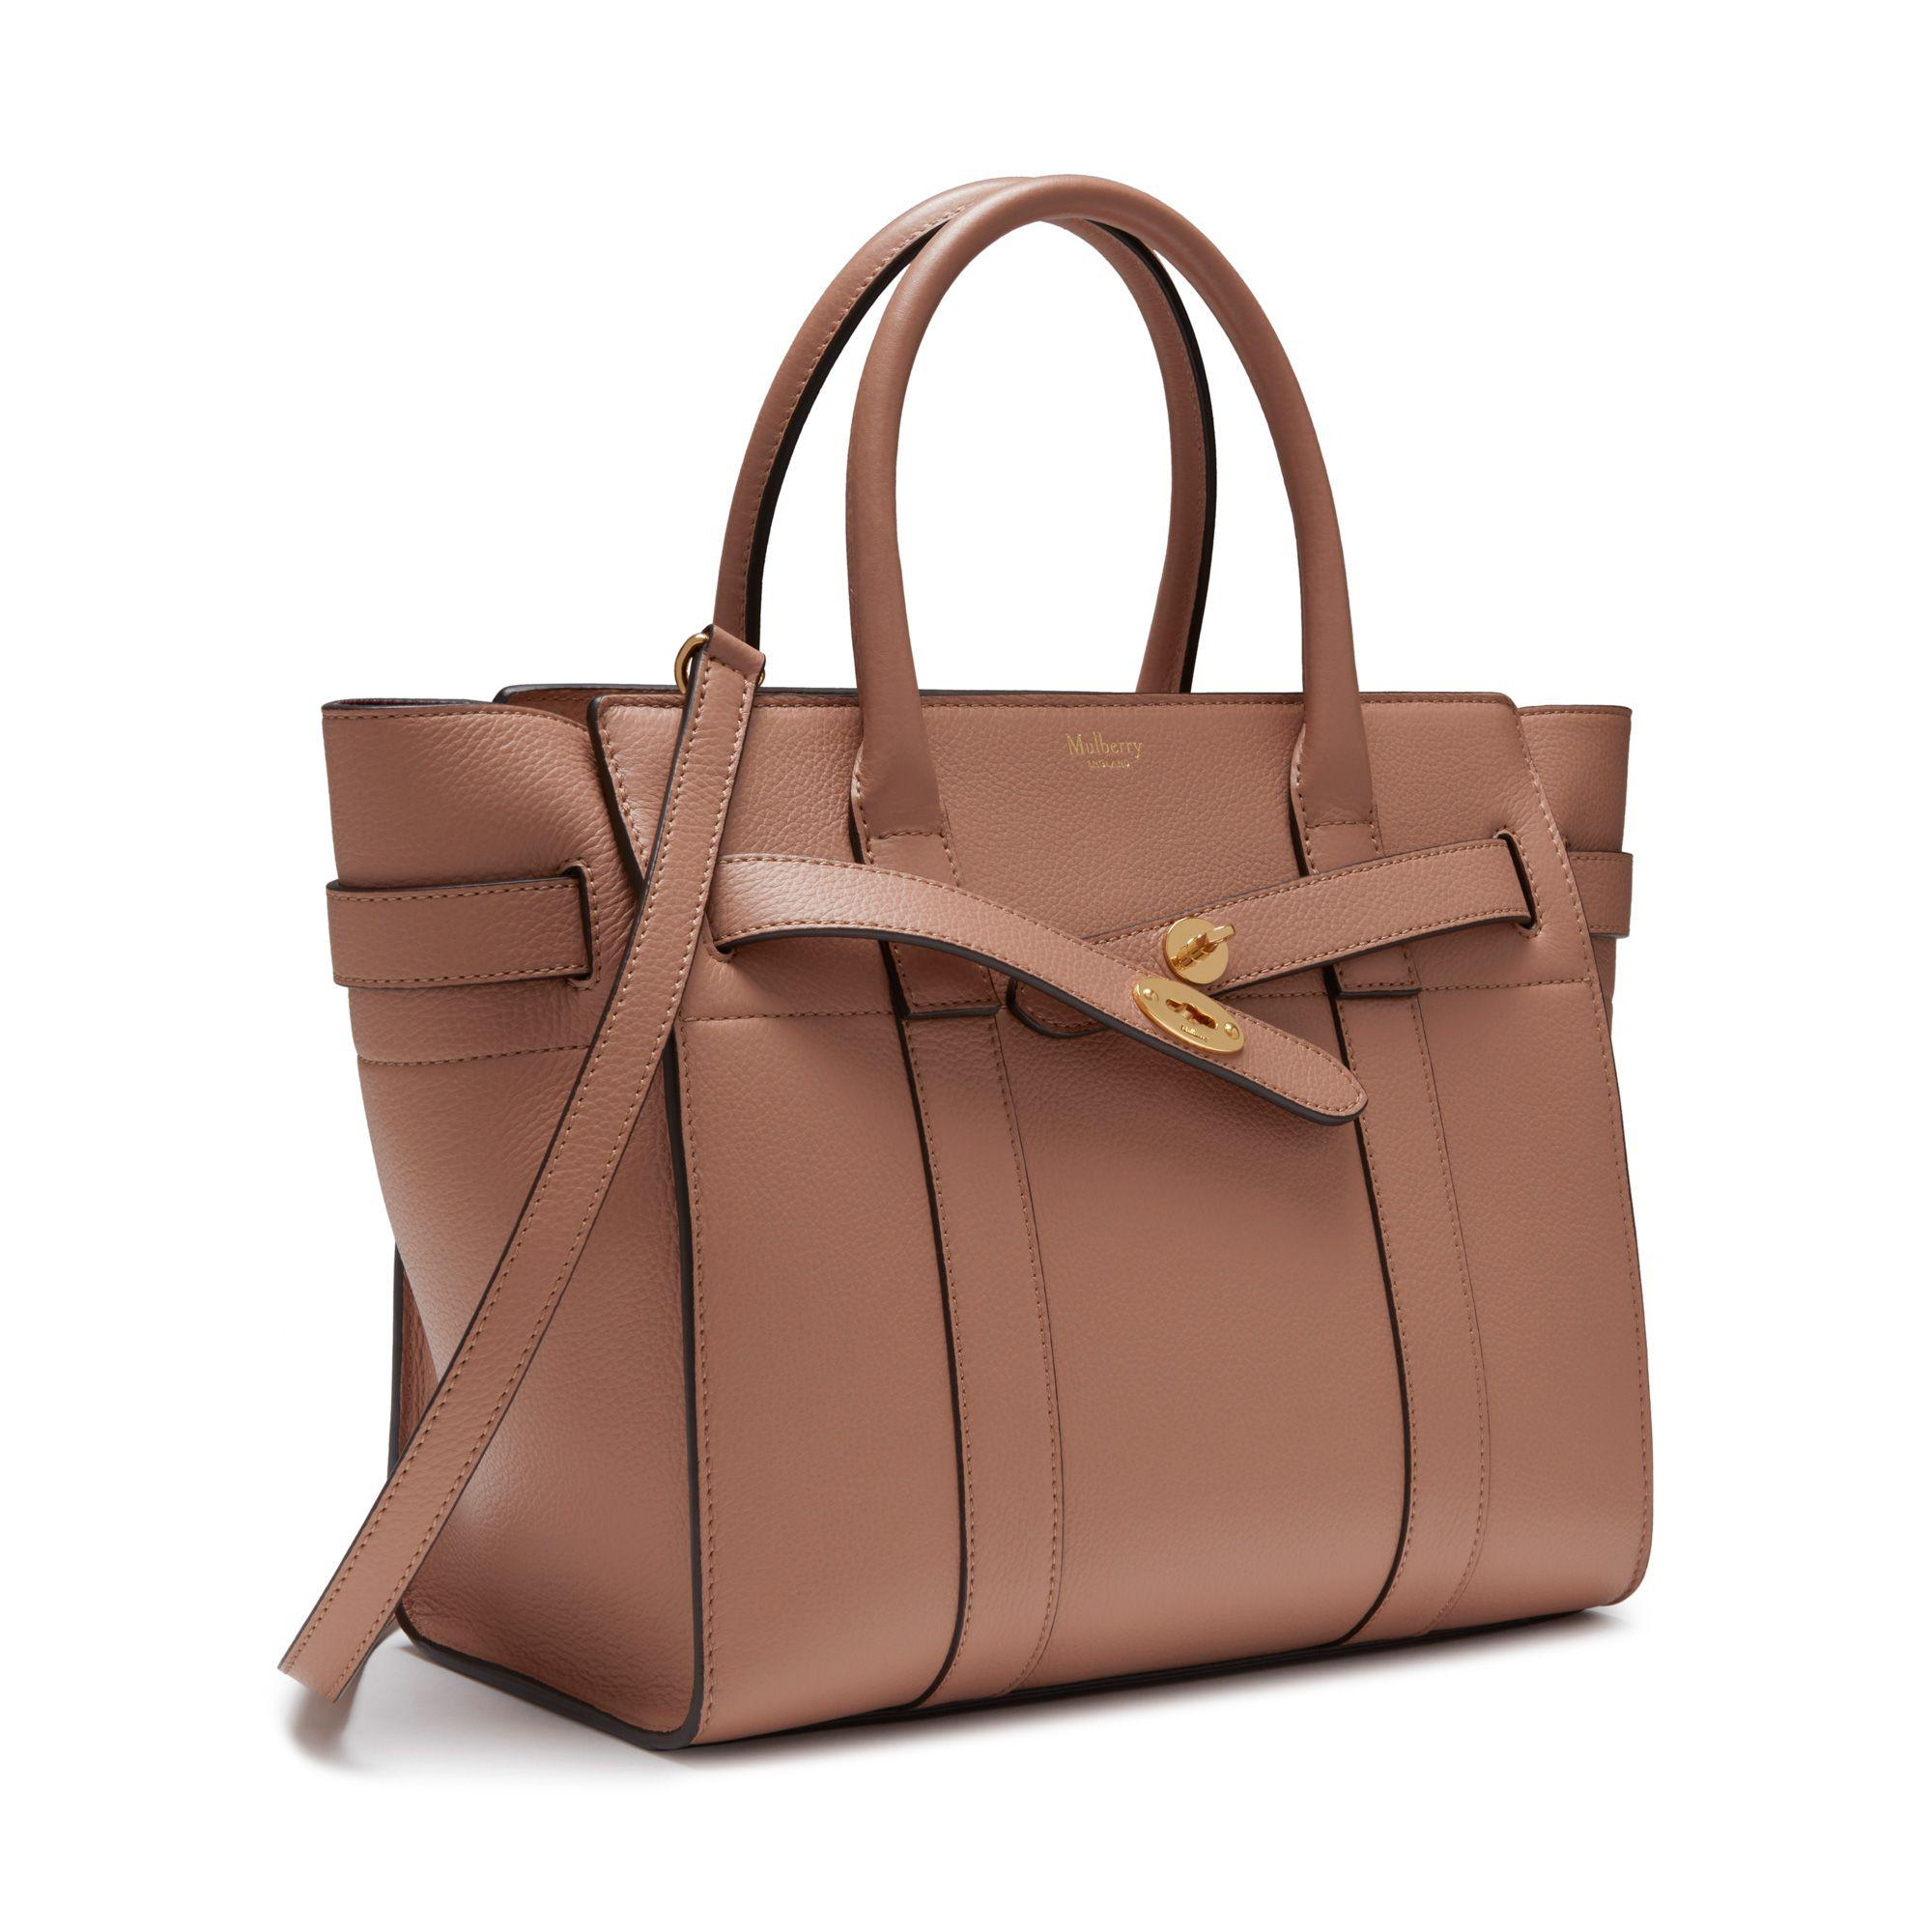 c25127898a ... purchase mulberry brown small zipped bayswater lyst. view fullscreen  eb5cc 67e47 aliexpress lyst mulberry chocolate leather bayswater top handle  bag ...